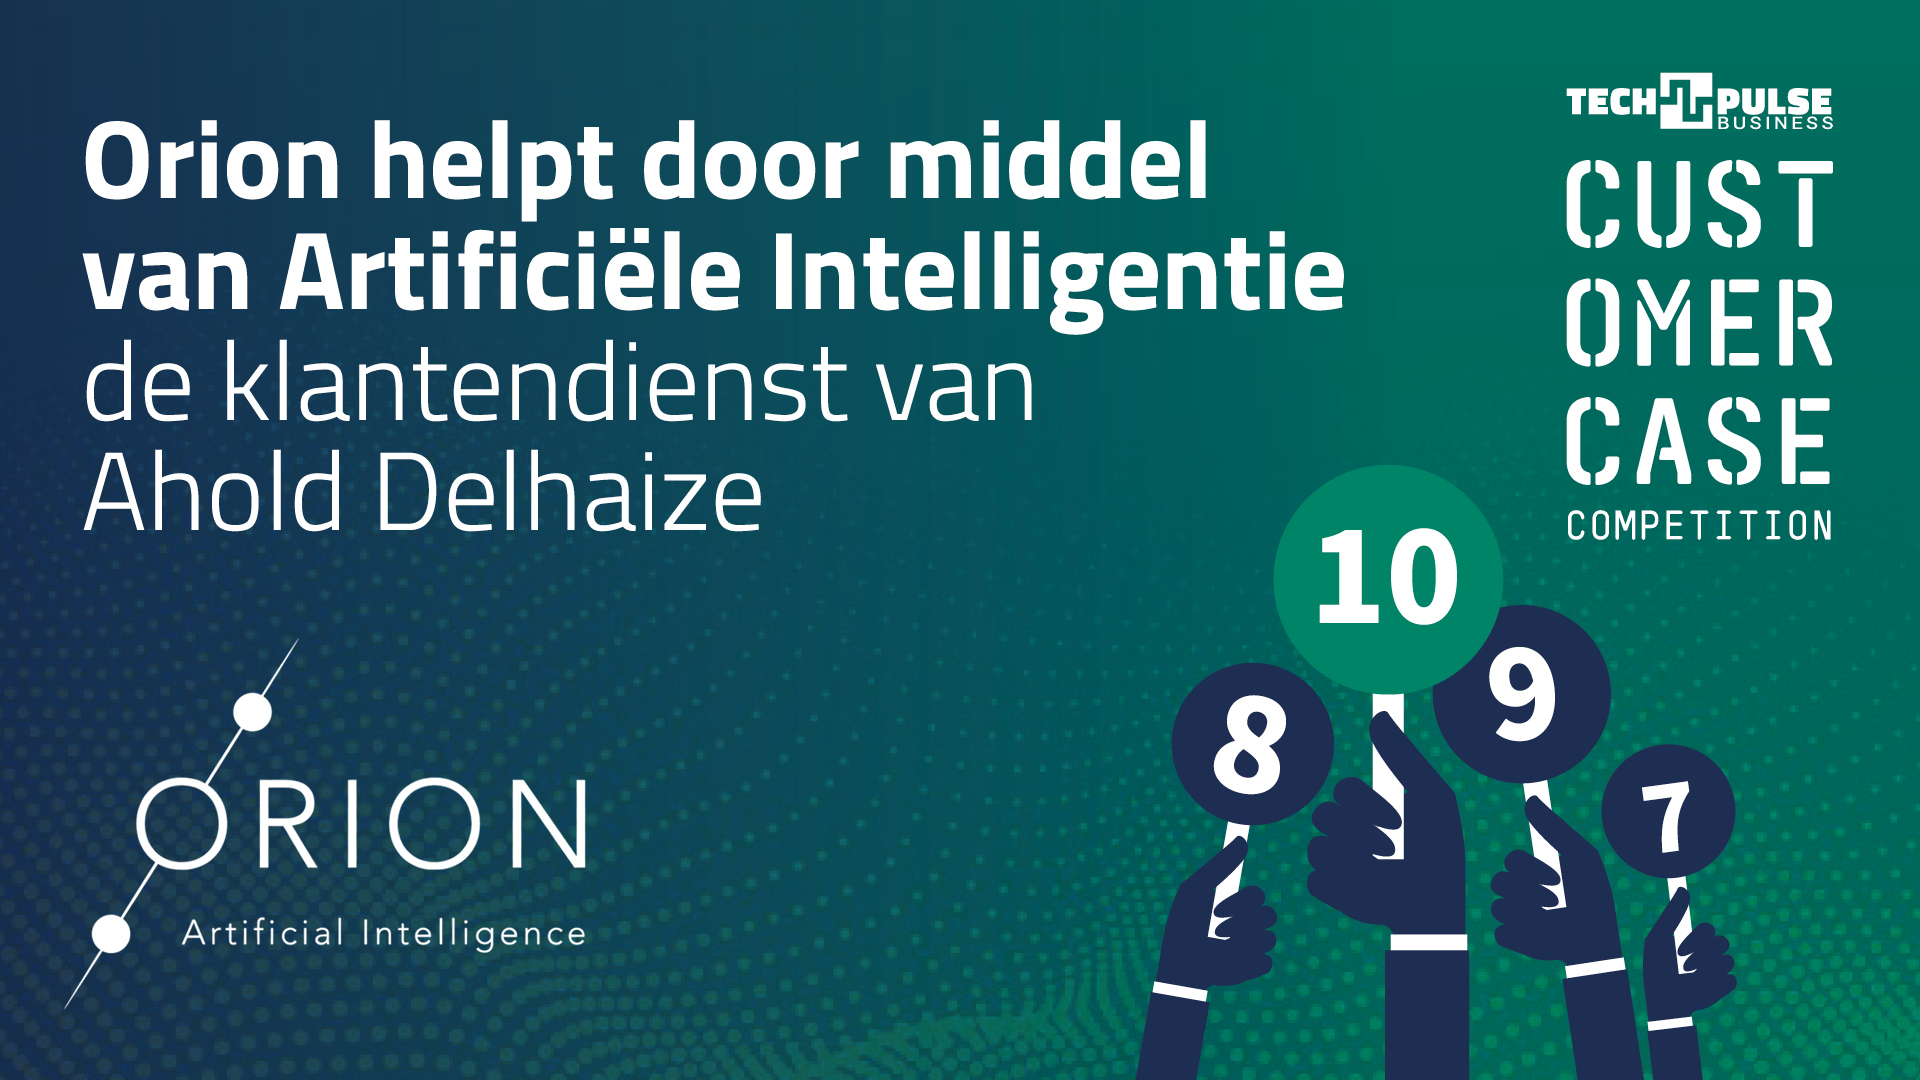 Customer Case Competition: Ahold Delhaize